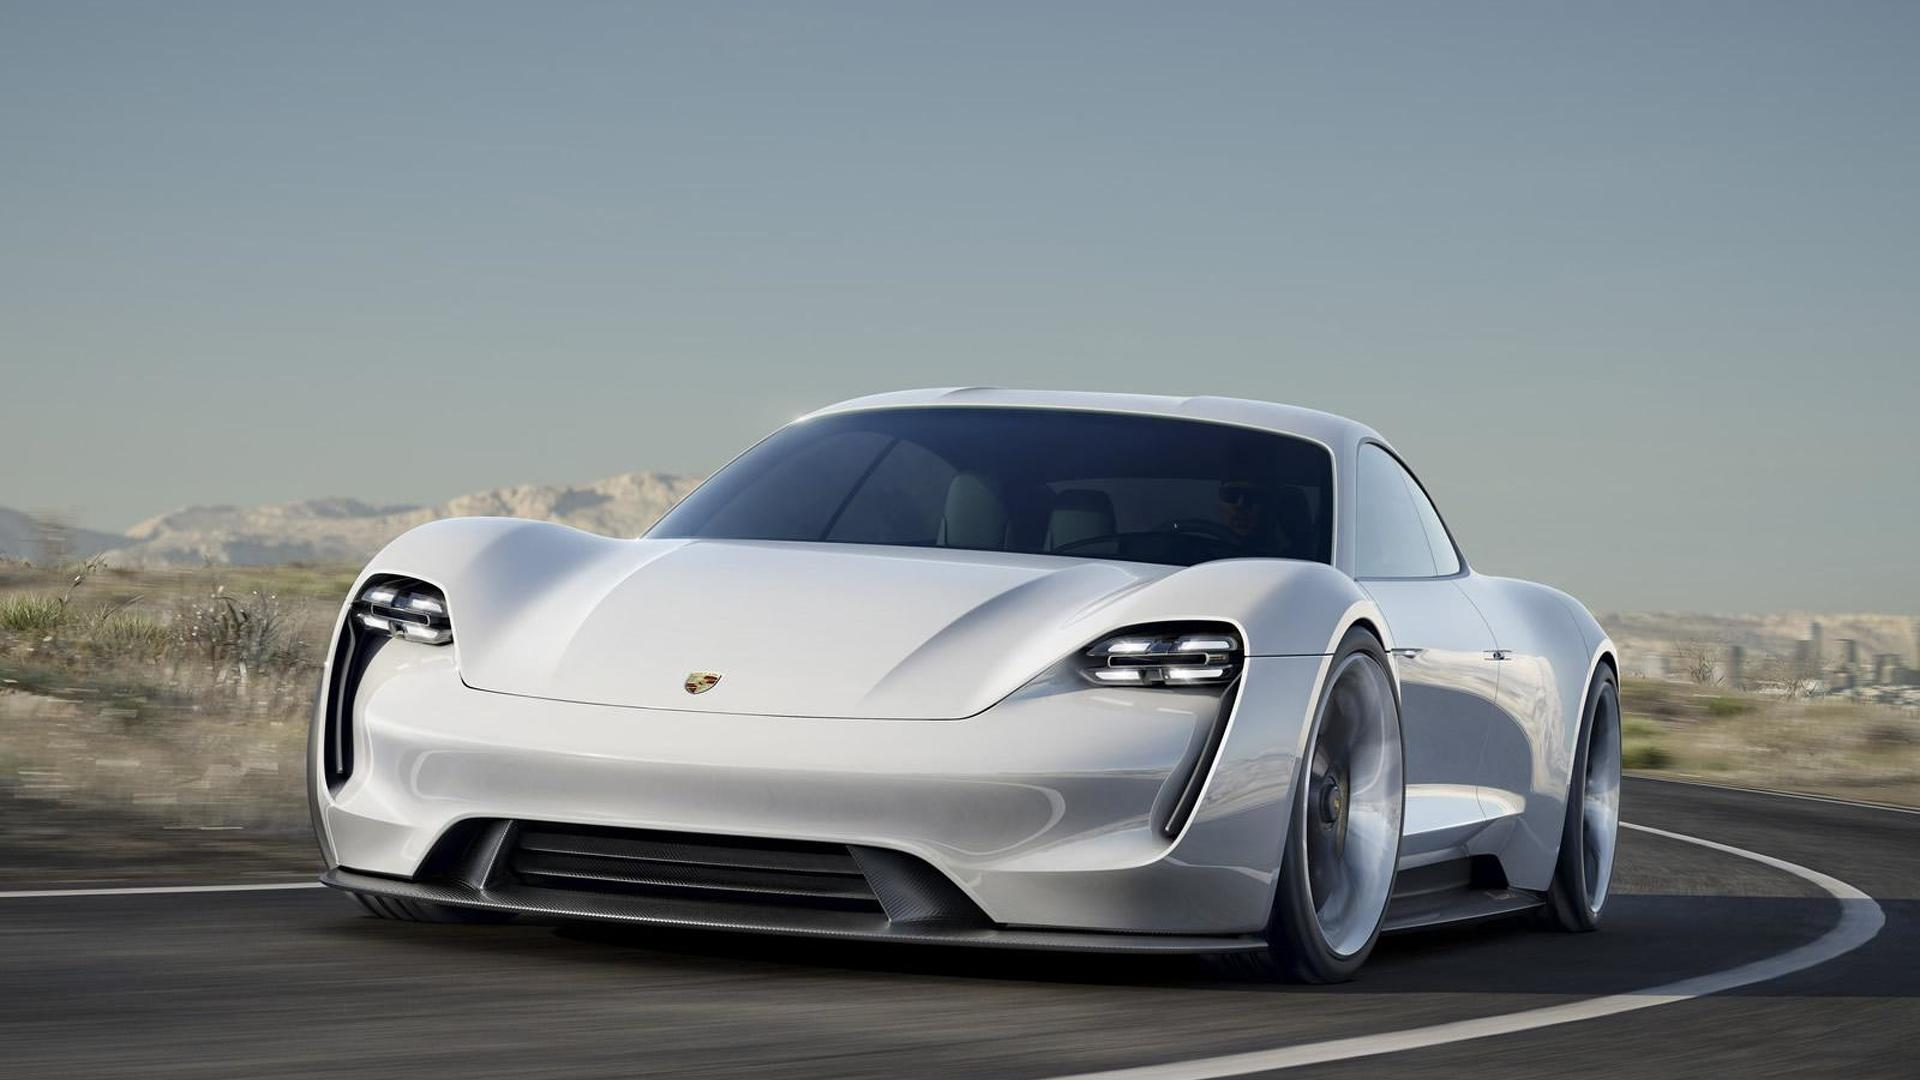 Porsche shows how the Mission E concept was born